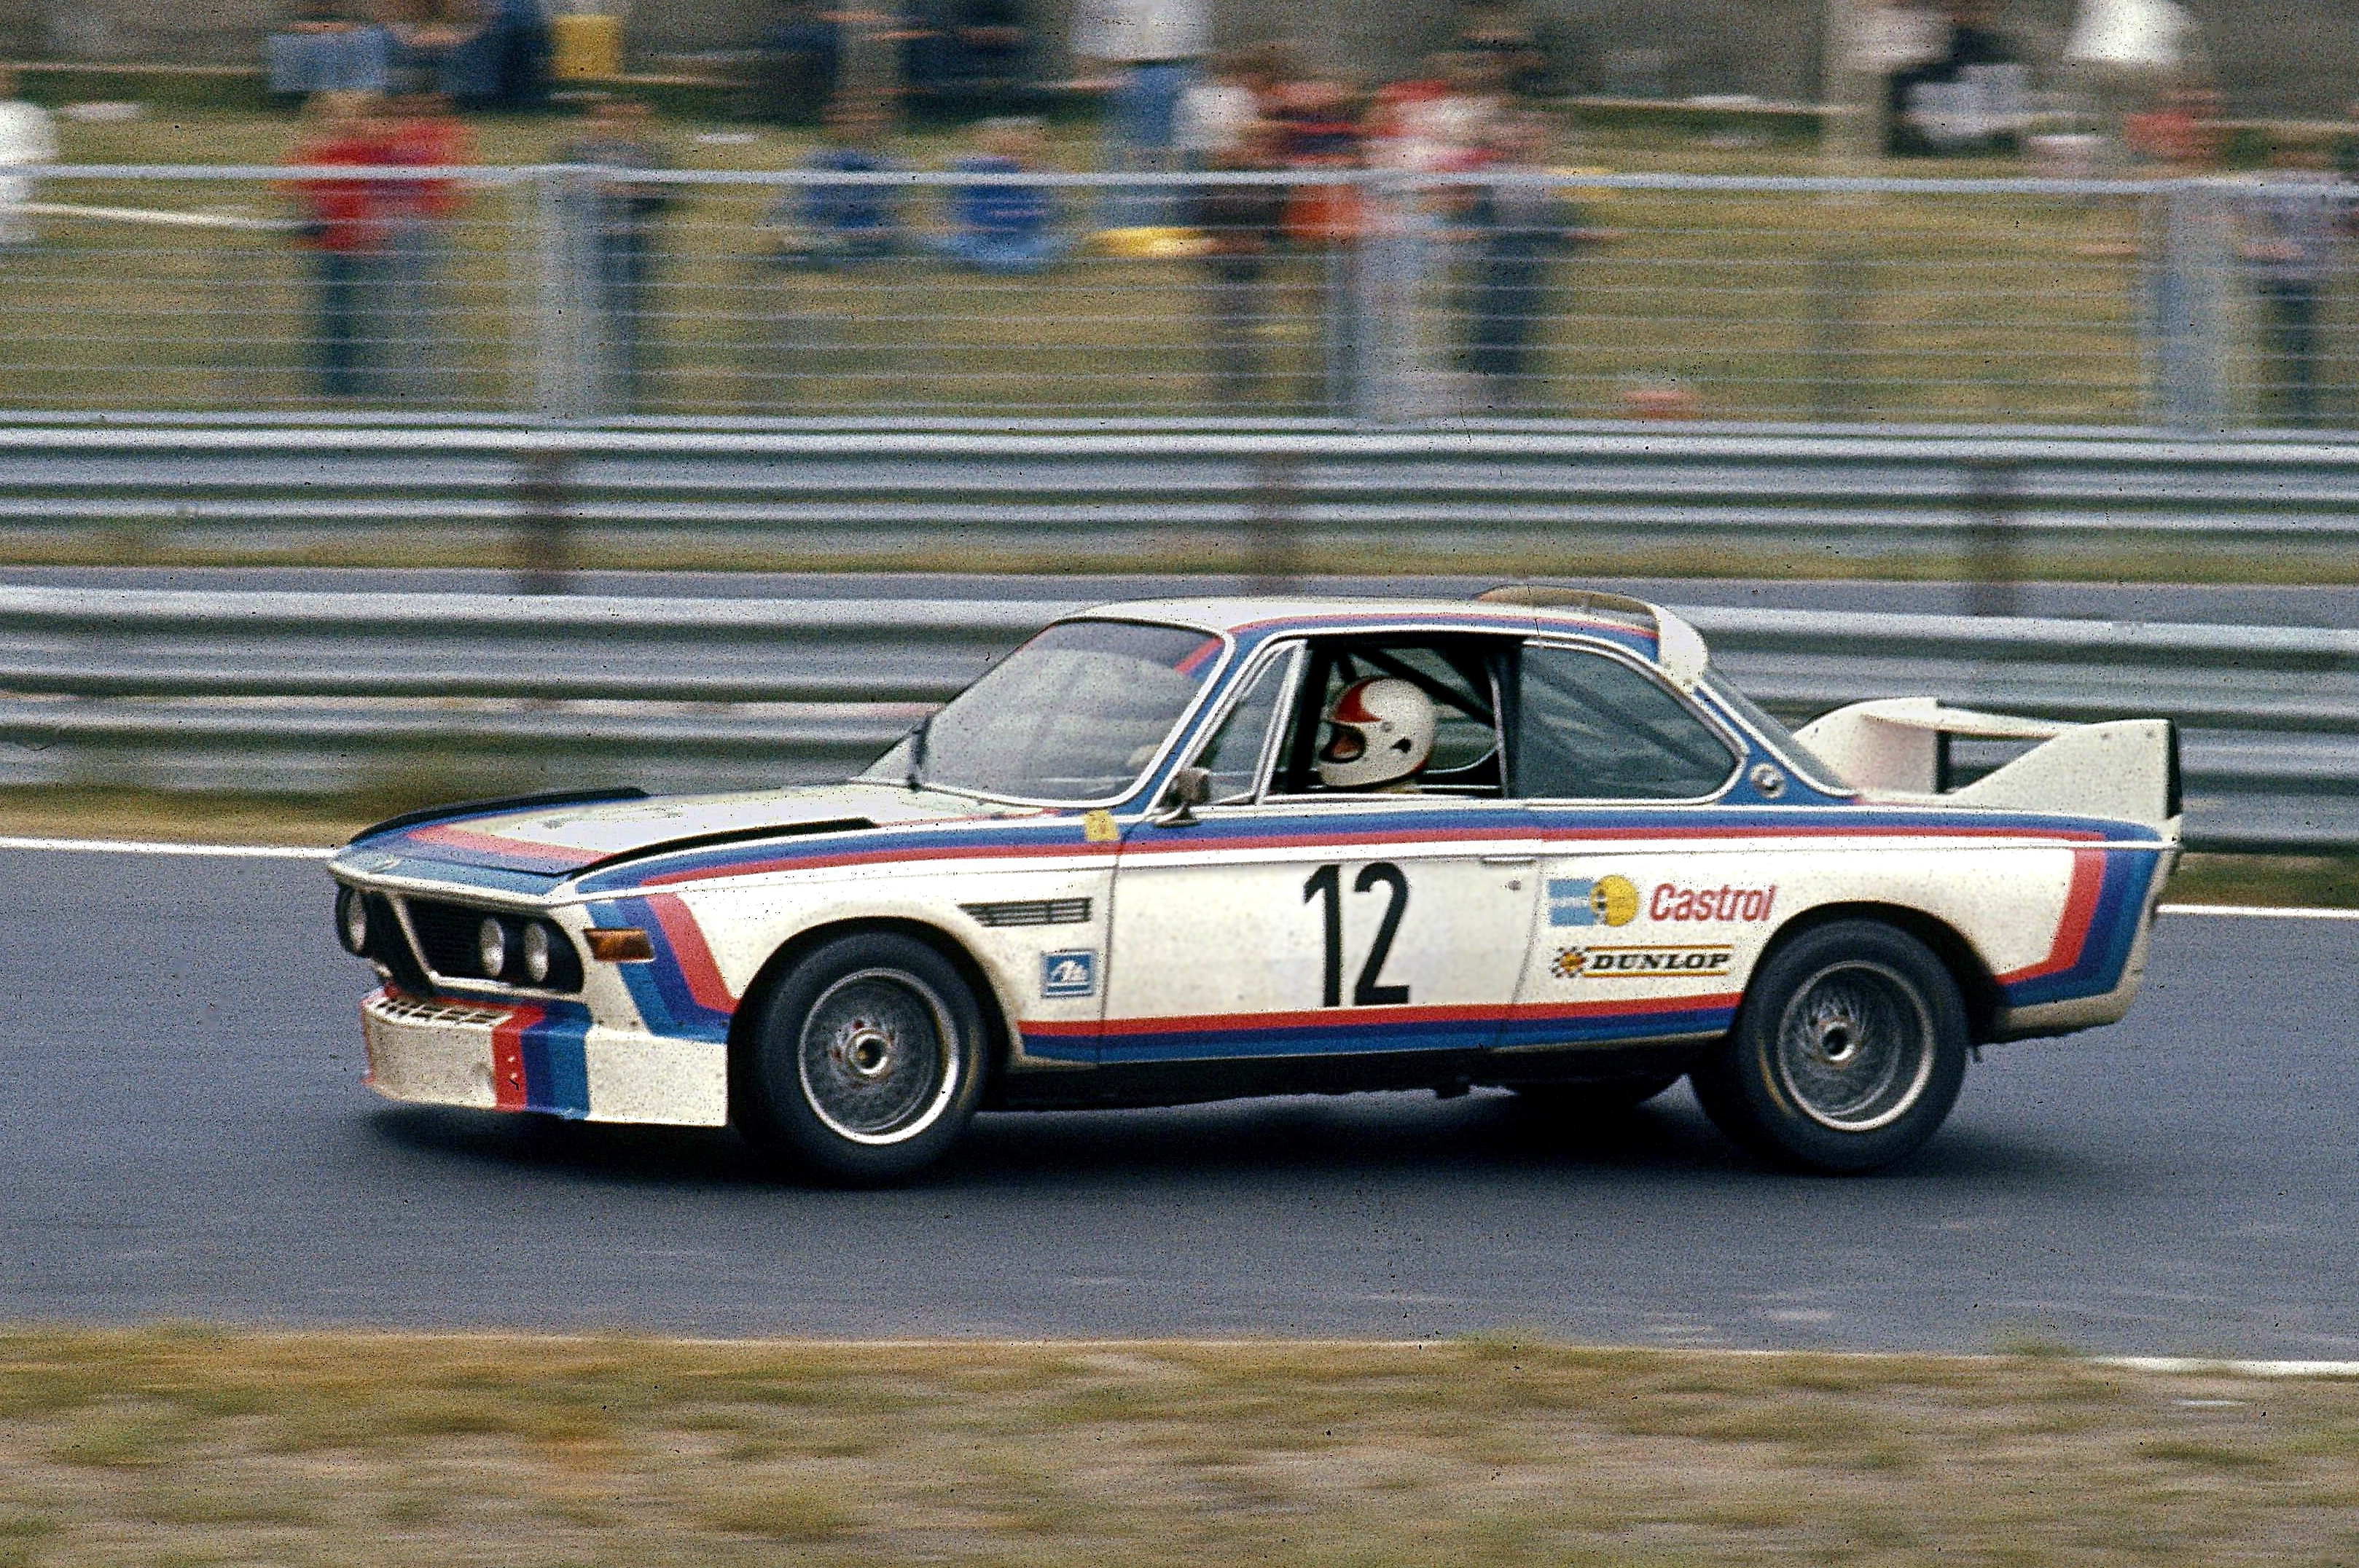 800px-Amon,_Chris_-_BMW_3,5_CSL_(1973-07-08_Sp)